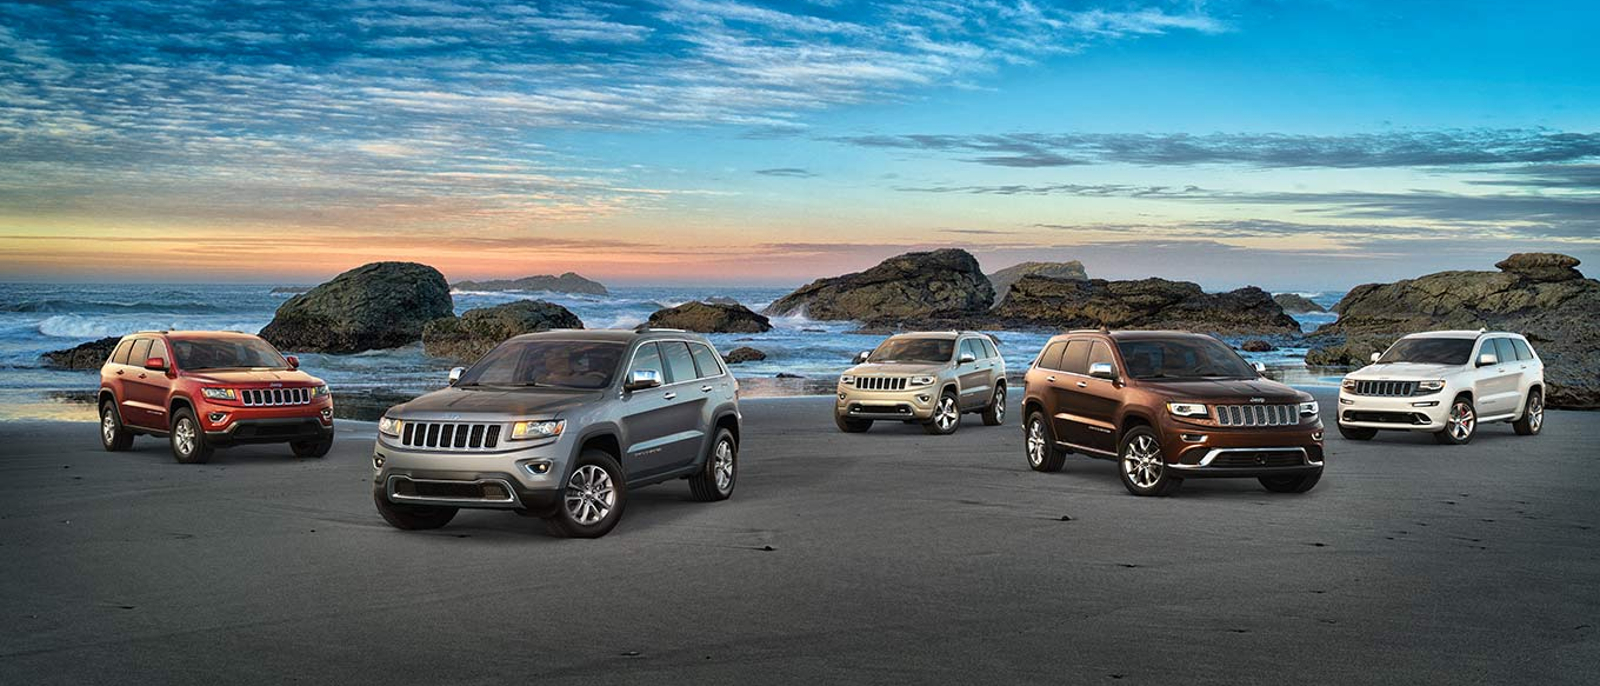 2015 Jeep Grand Cherokee models